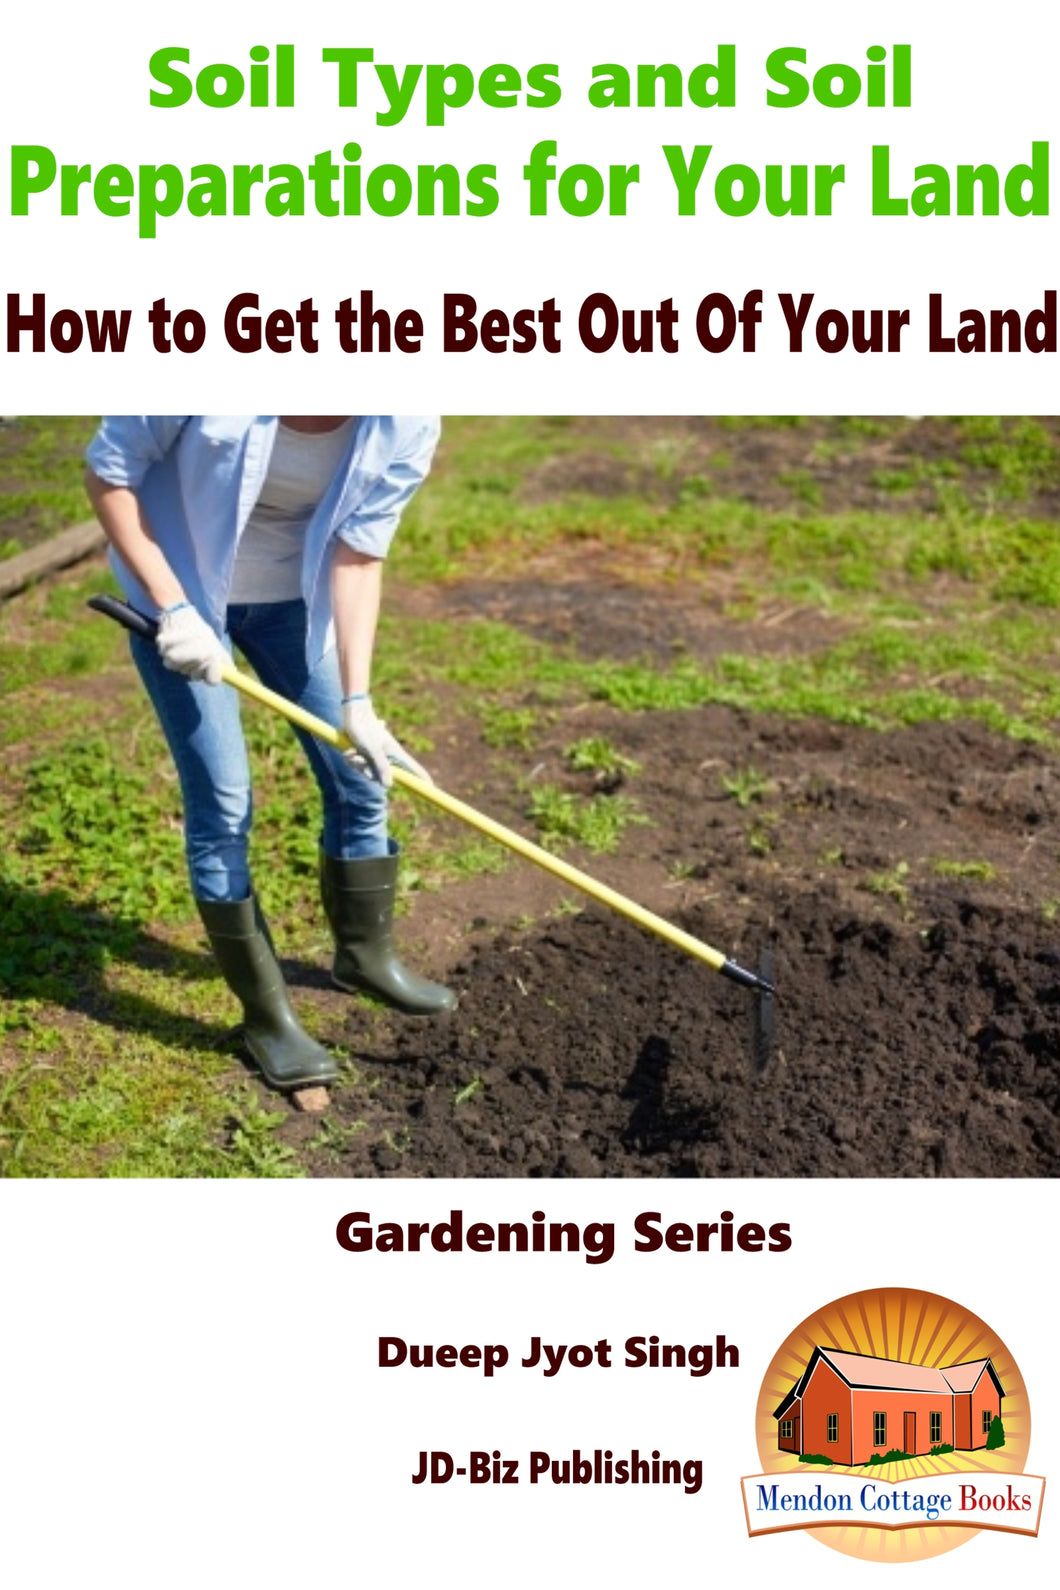 Soil Types and Soil Preparation for Your Land